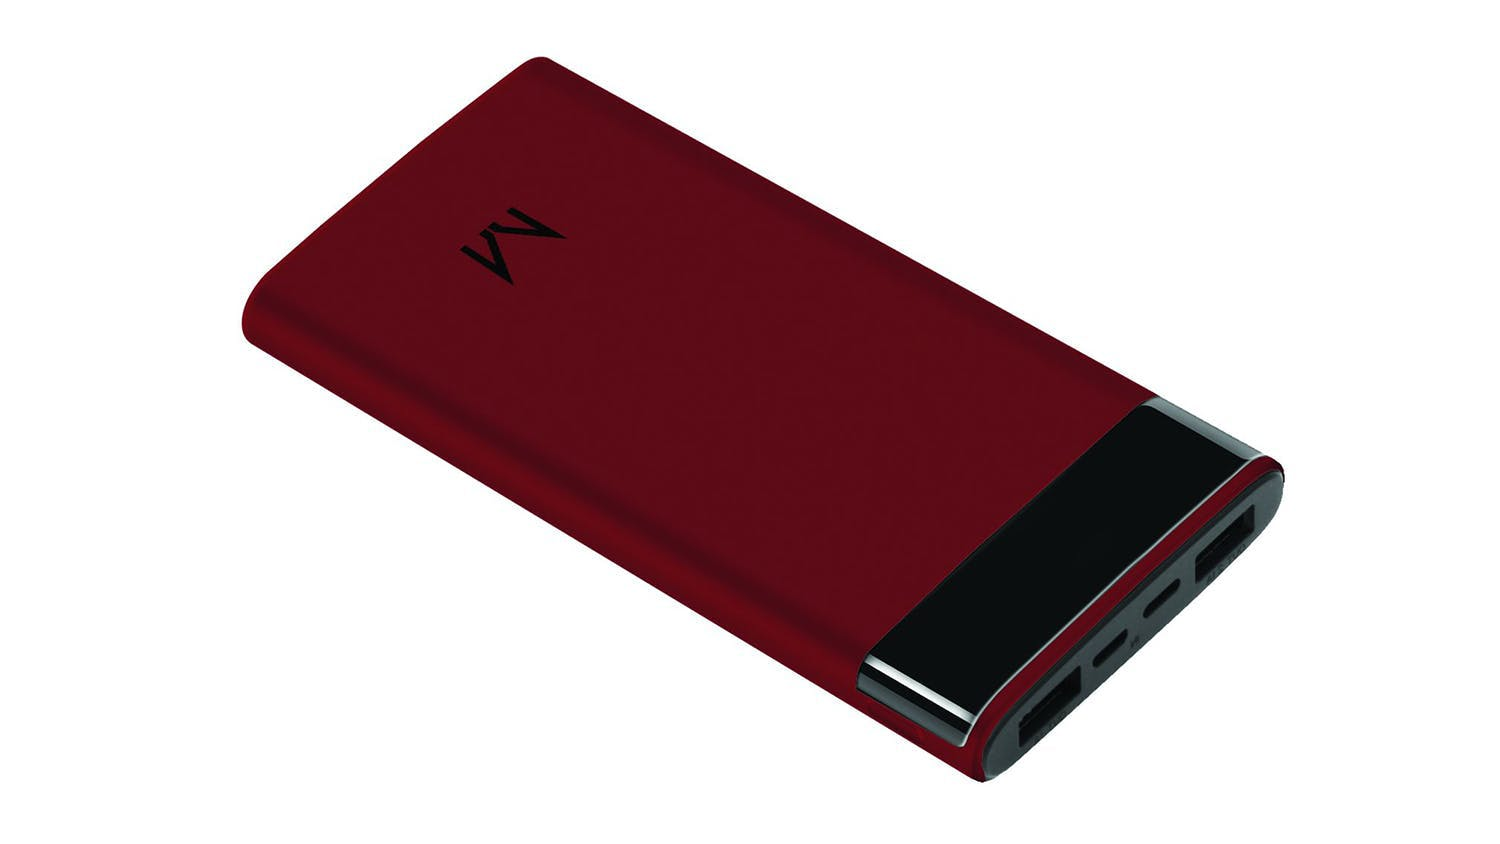 Moyork Watt 8000mAh Power Bank - Merlot Red